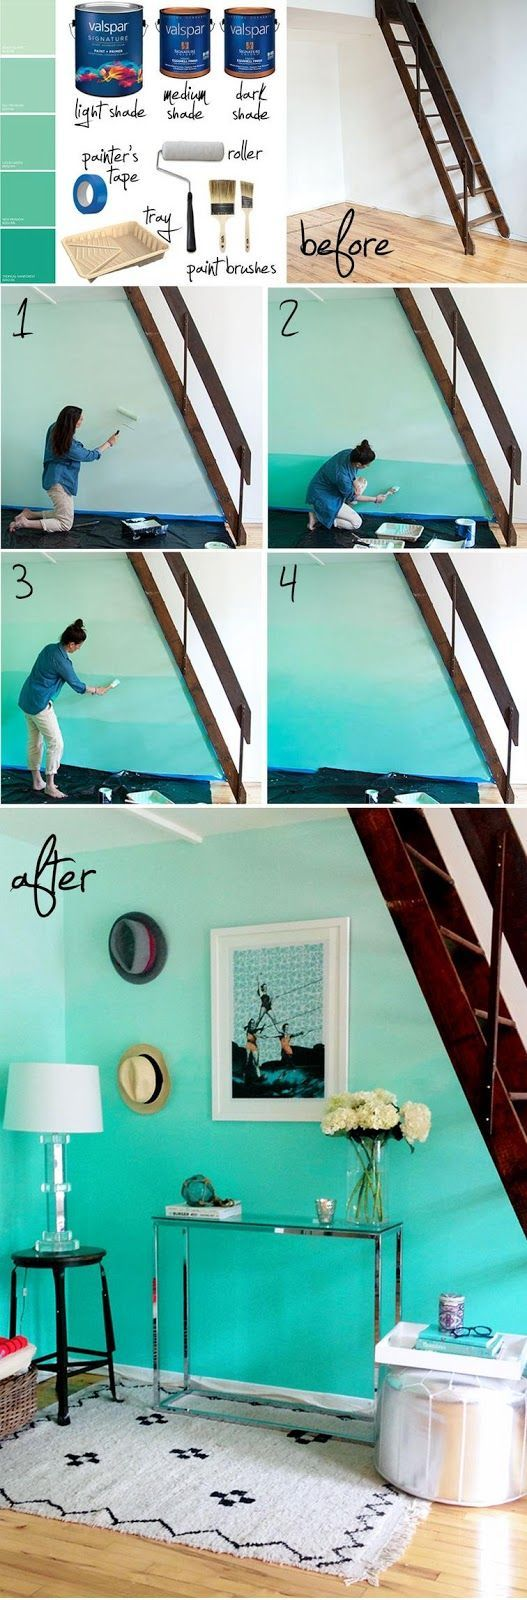 Make your home stylish from the floor